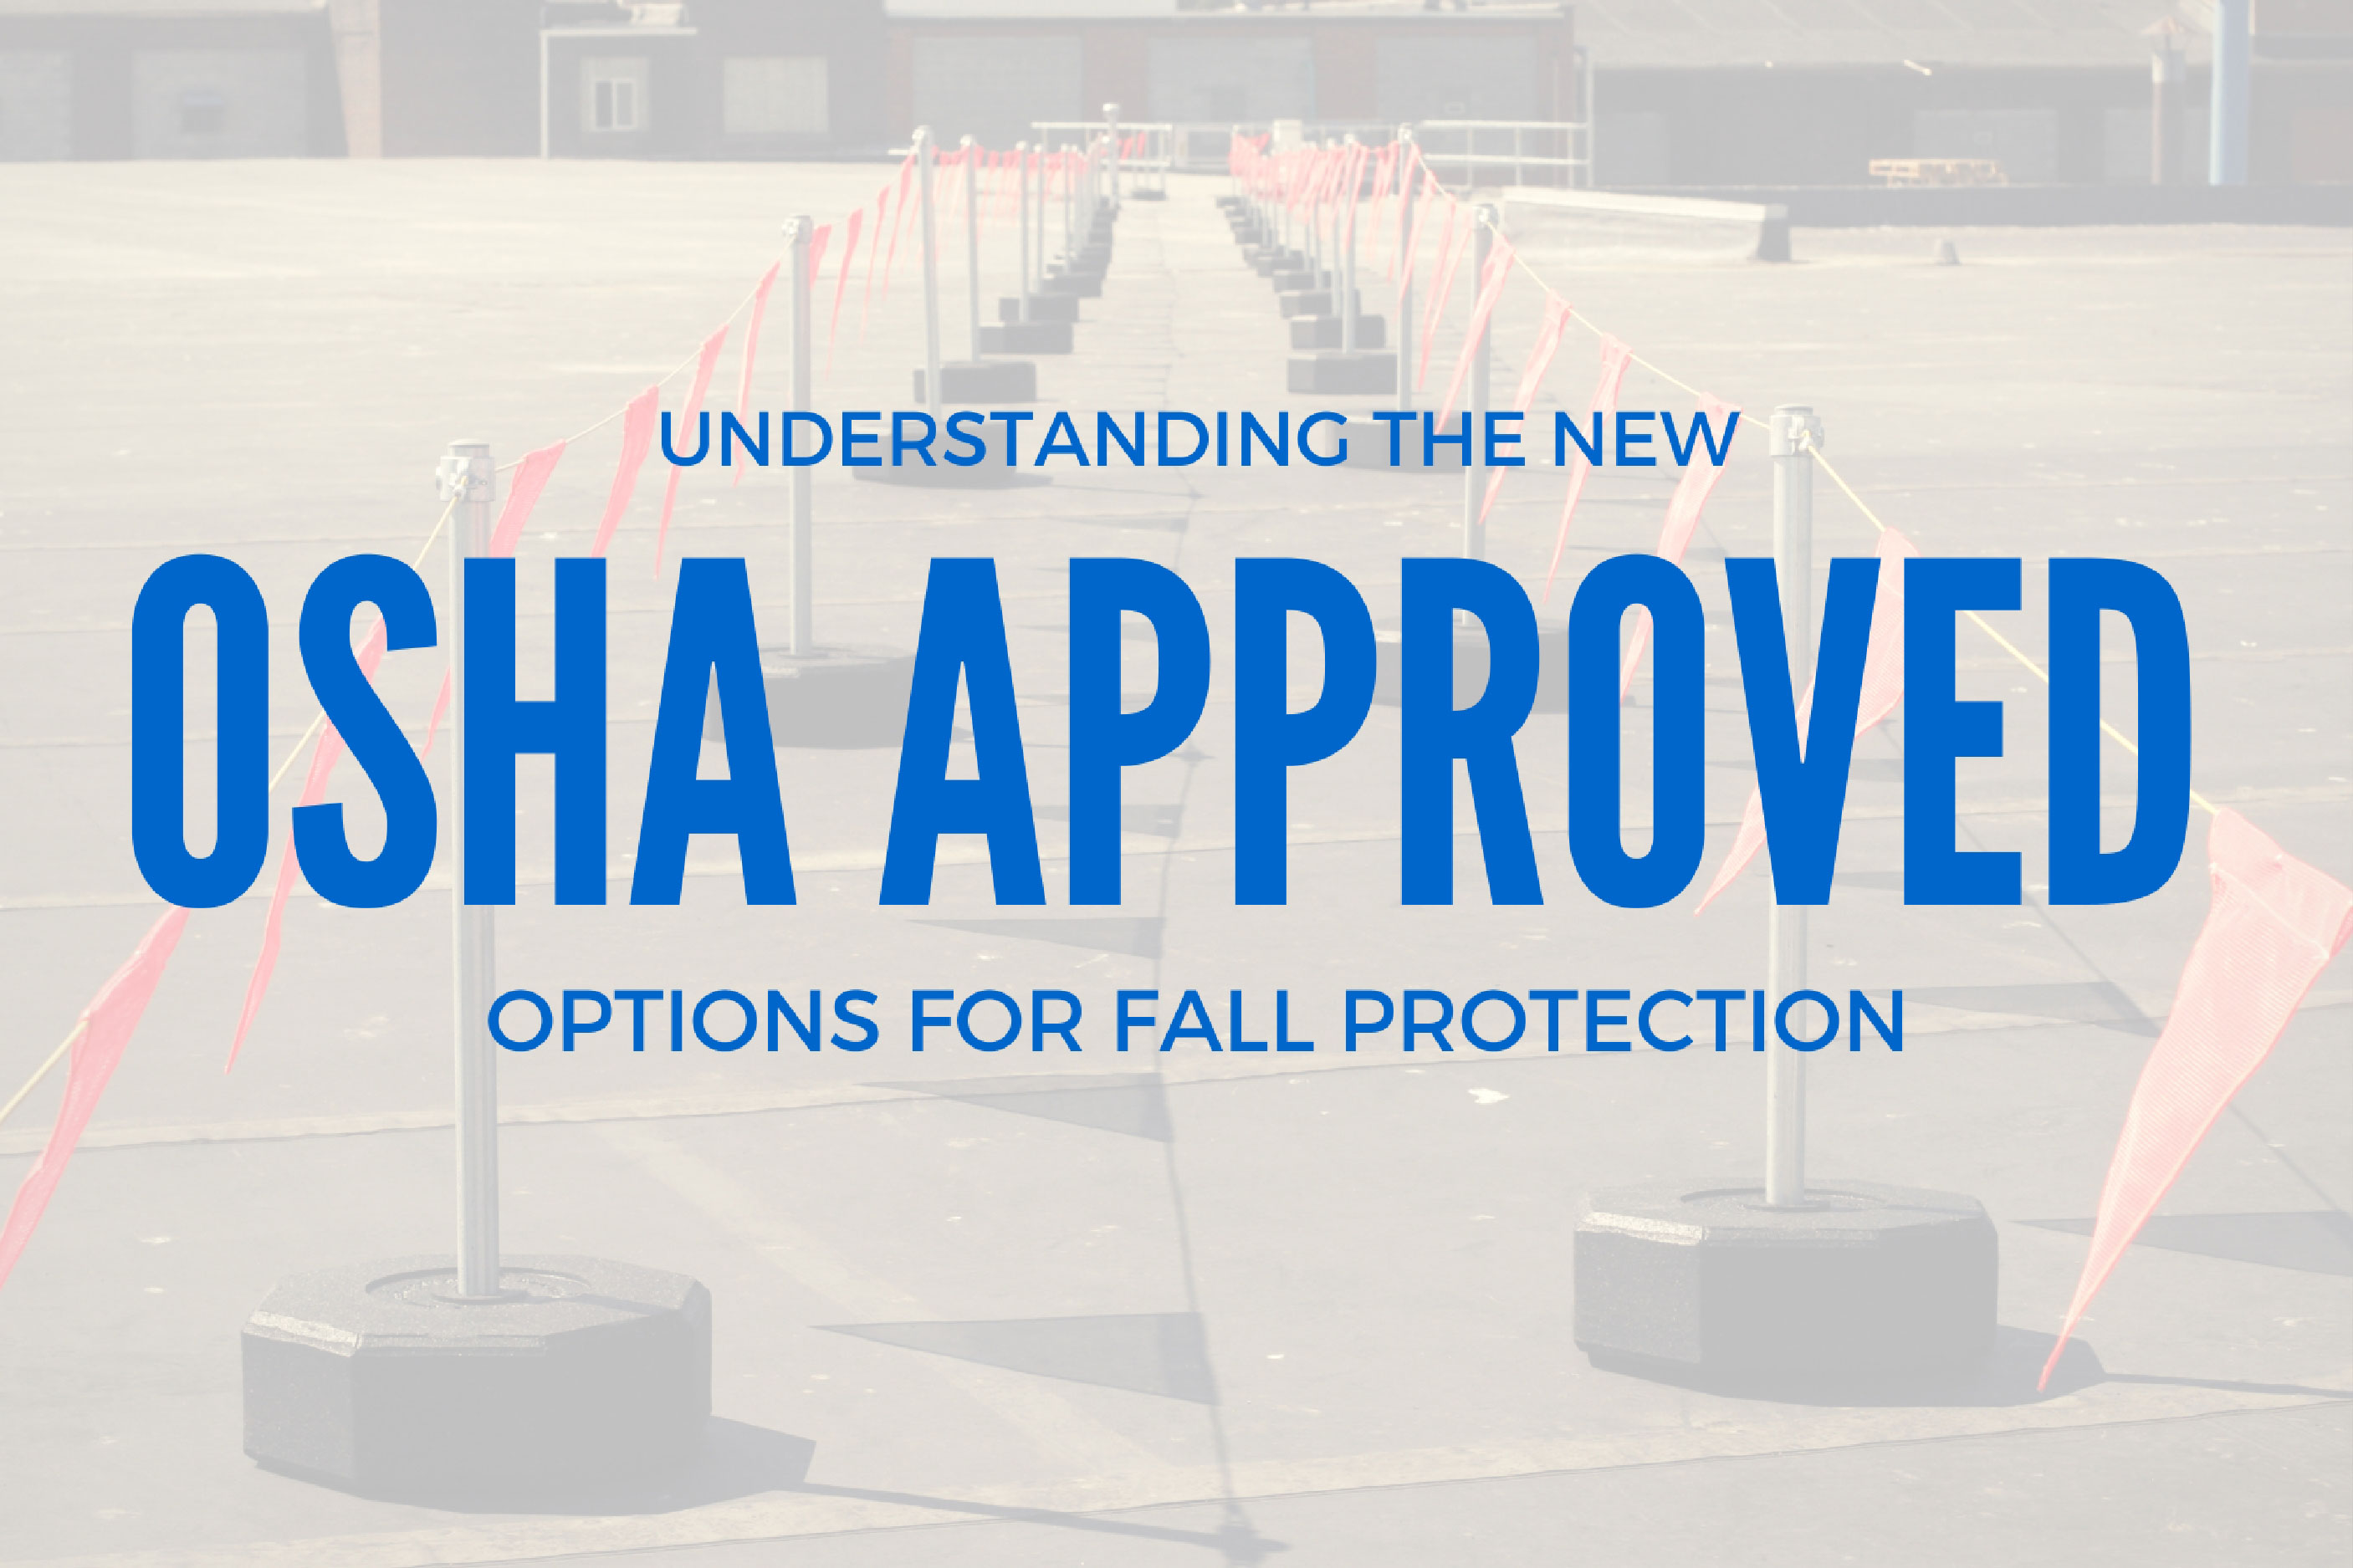 Understanding the New OSHA Approved Options for Fall Protection